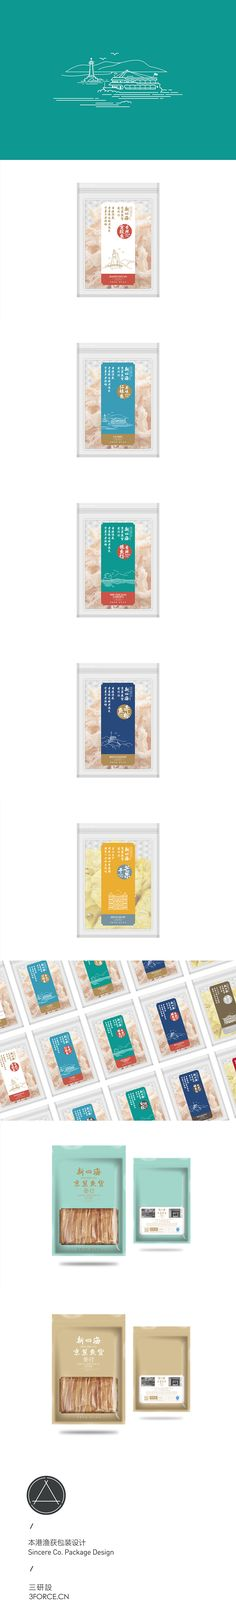 Sincere Co. Seafood Packaging / 新四海本港漁獲包裝設計 on Behance